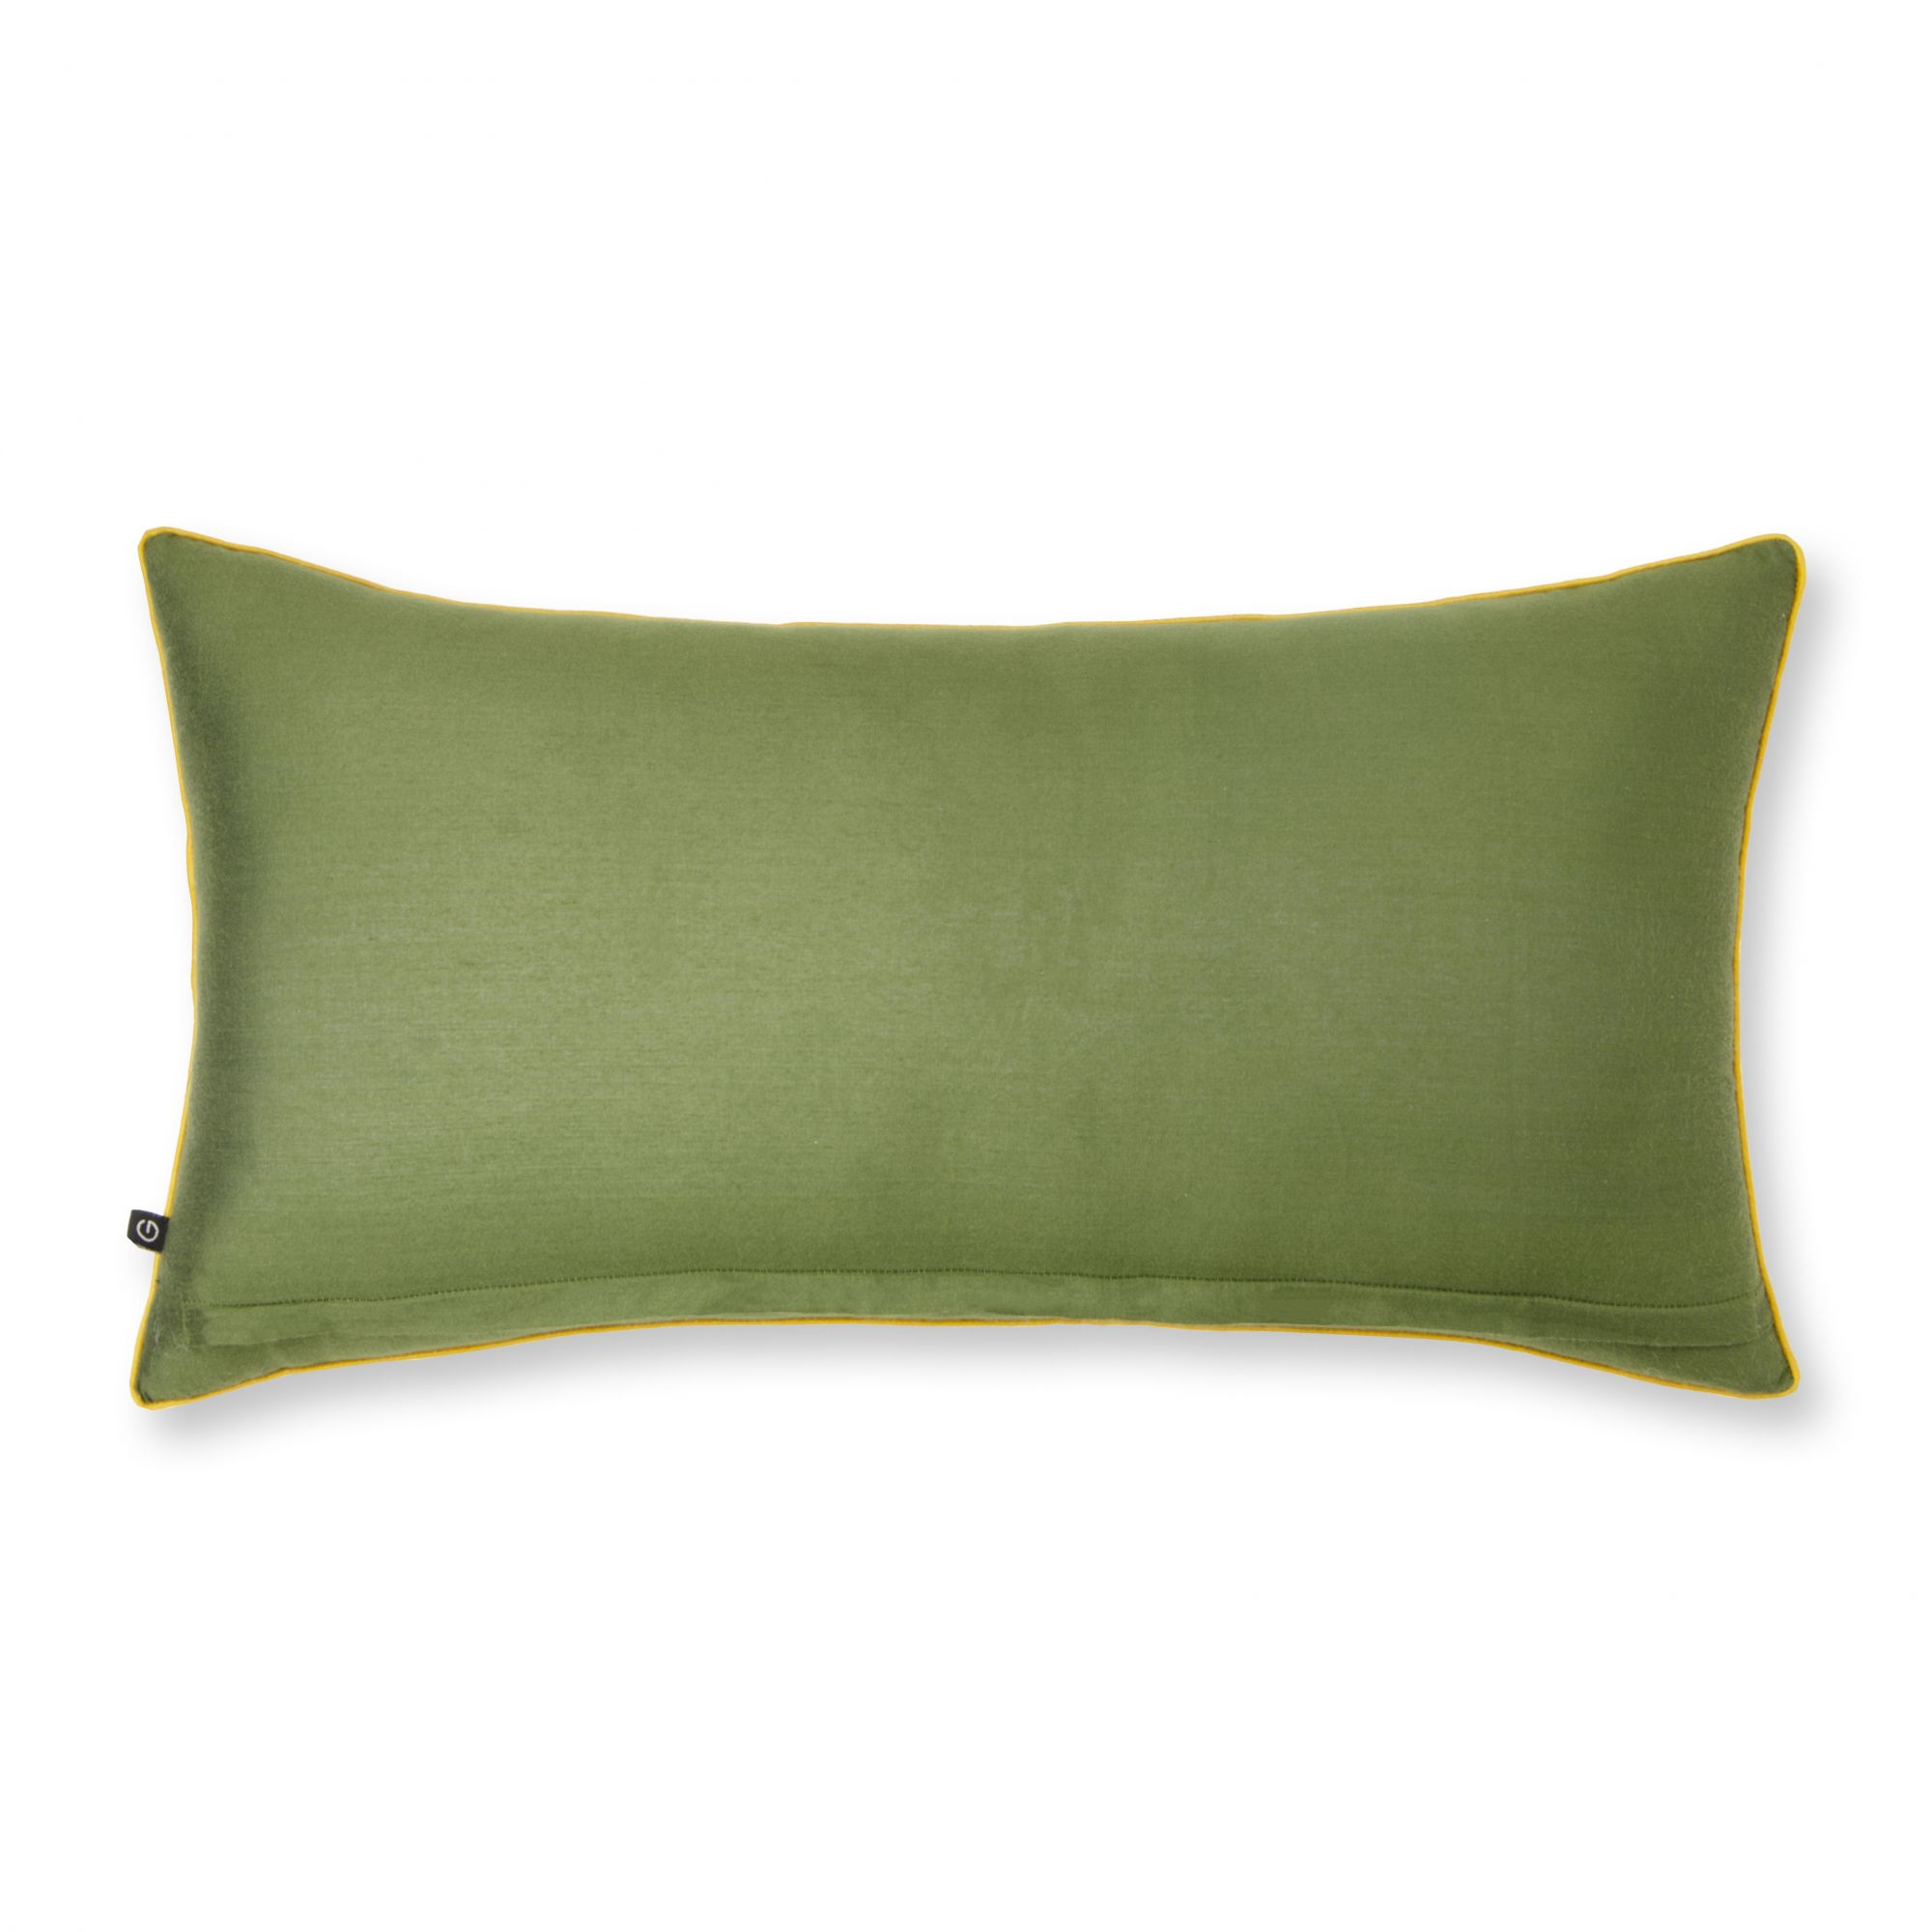 A Frame of Ferns - Late Afternoon Cushion Cover